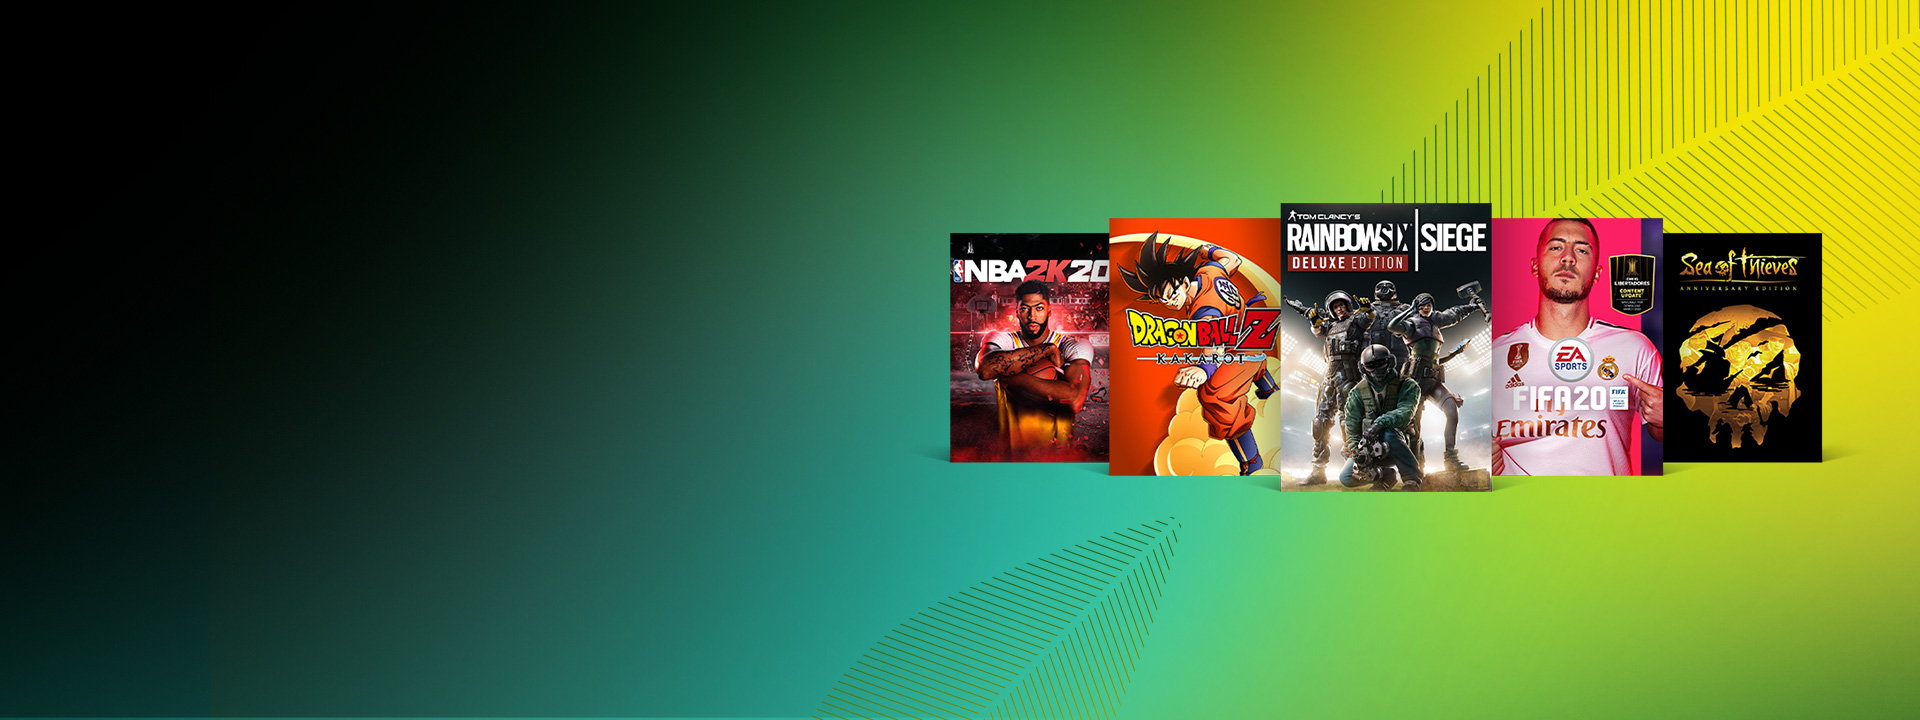 Box art for Xbox One games on sale, including Rainbow Six Siege: Deluxe Edition, Dragon Ball Z: Kakarot, and FIFA 20.